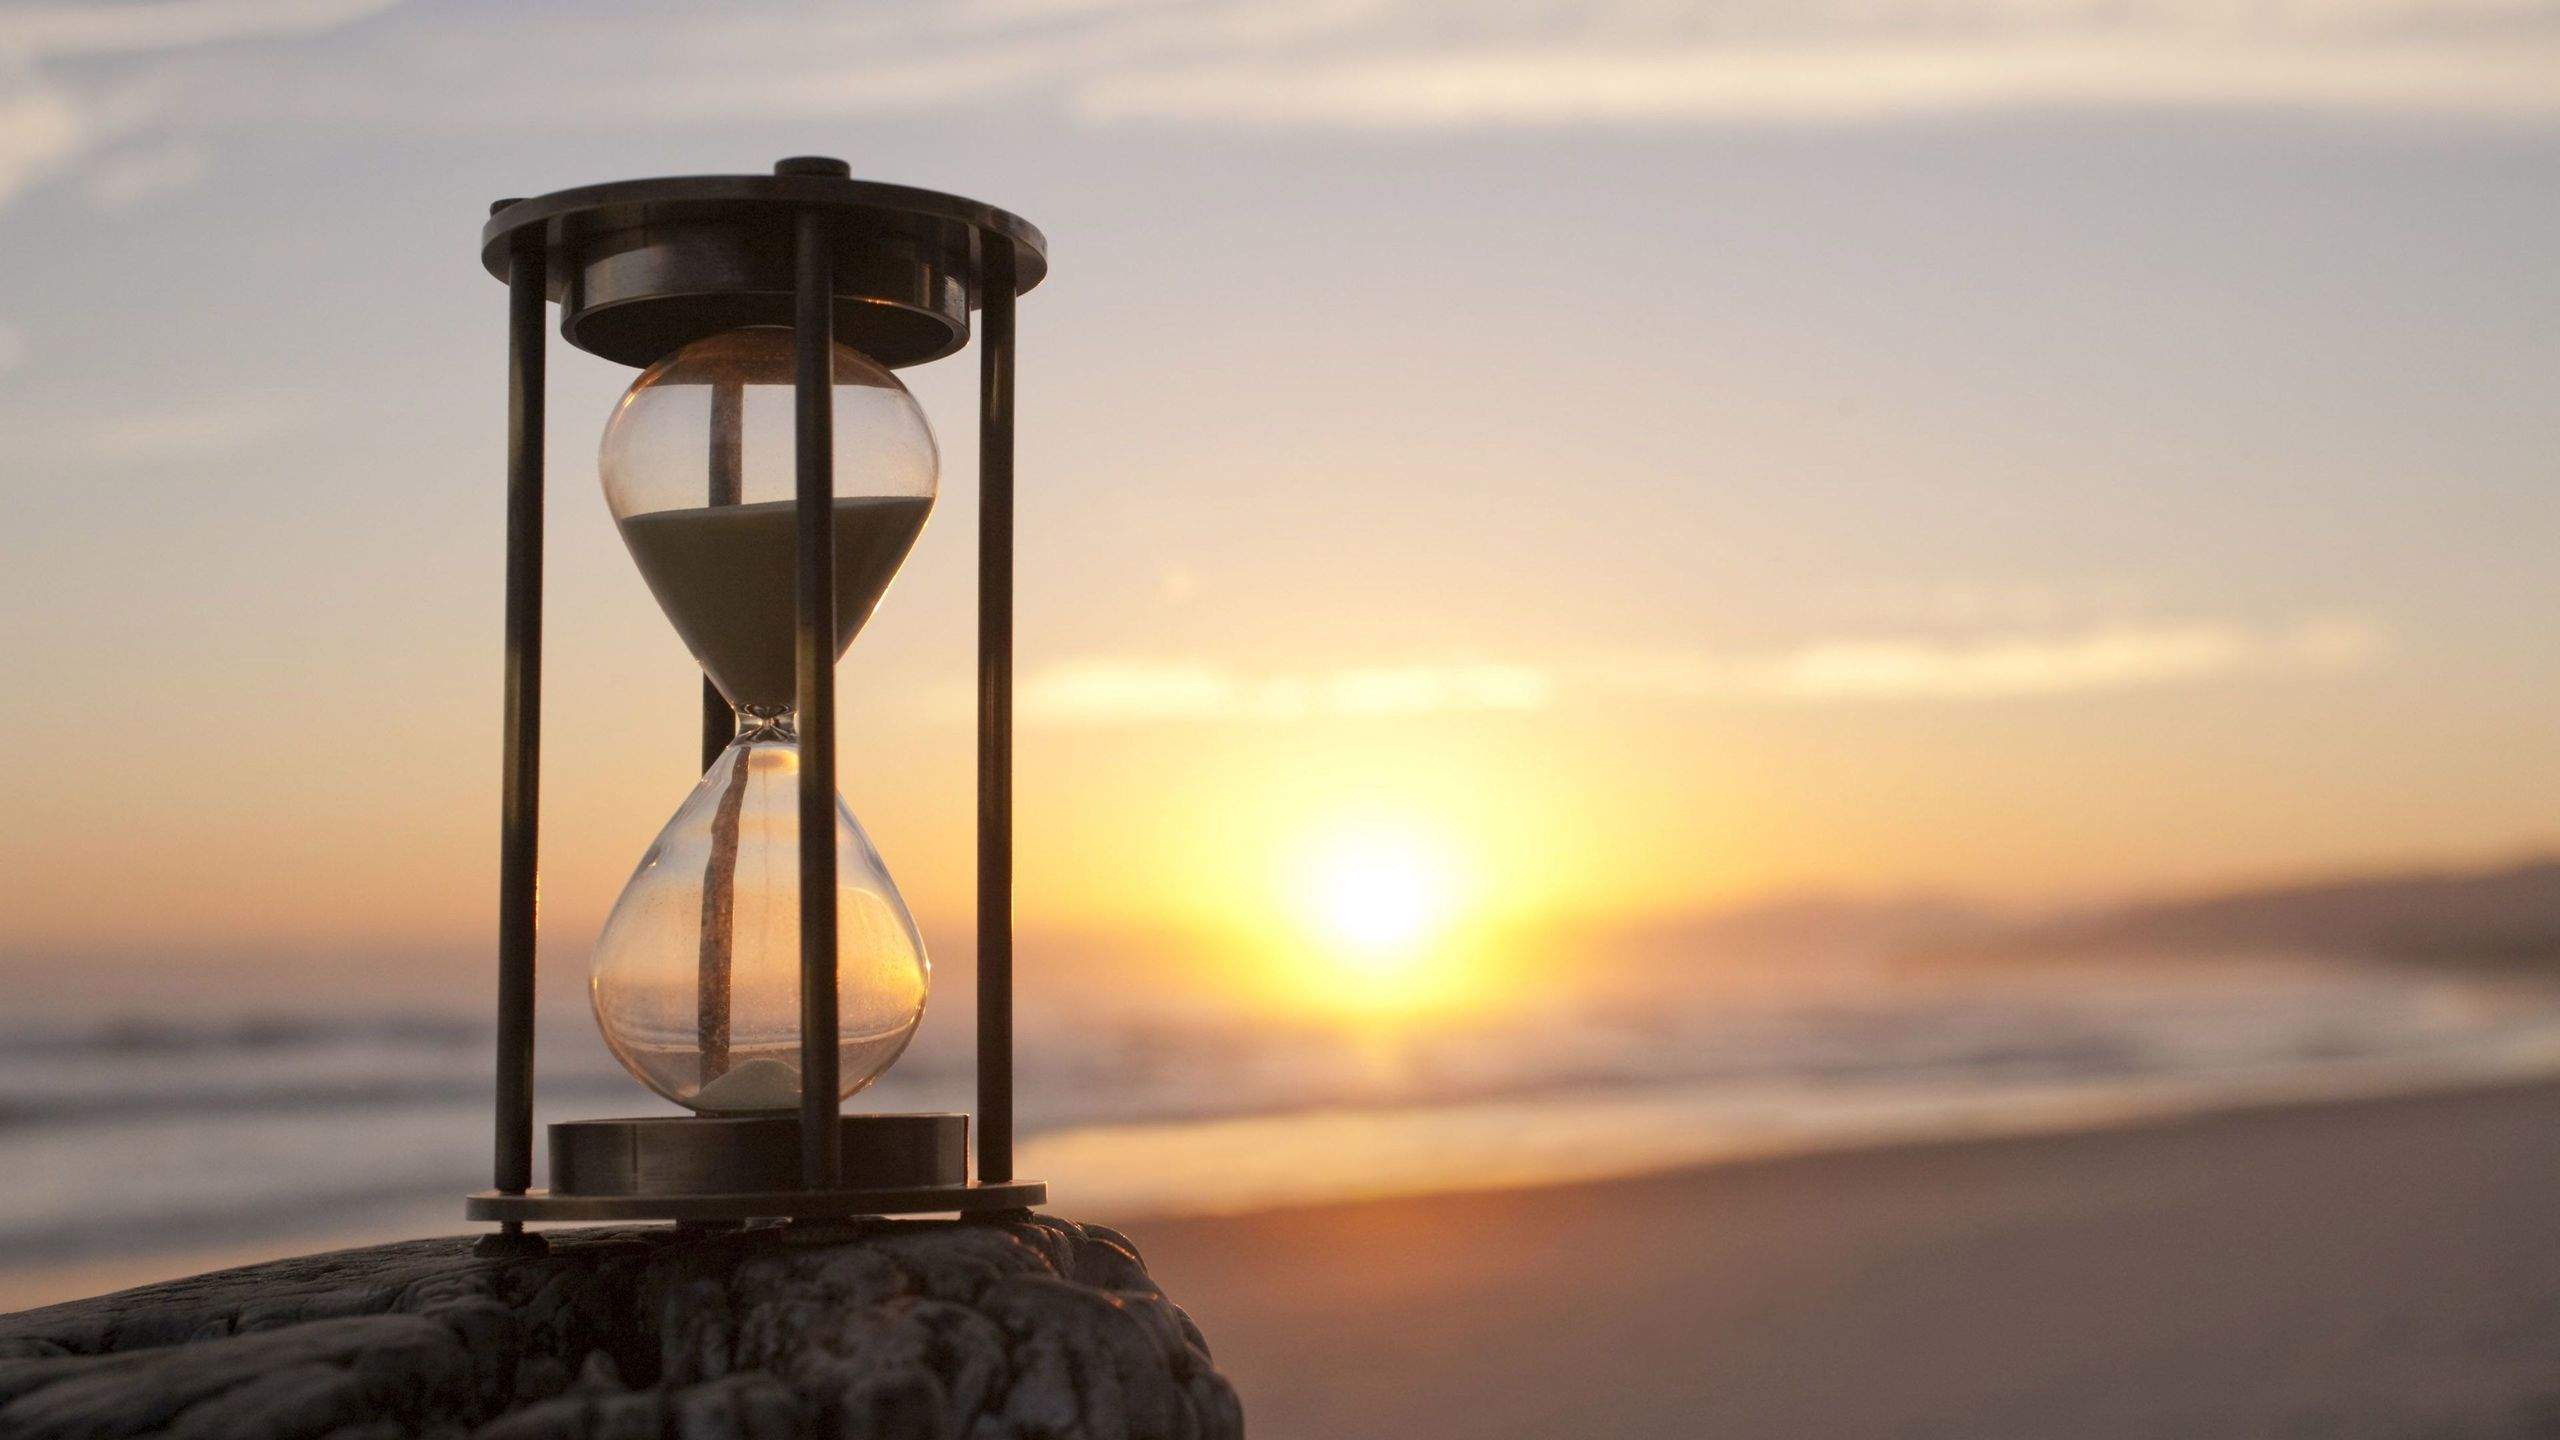 hourglass-images-sand-glass-formidable